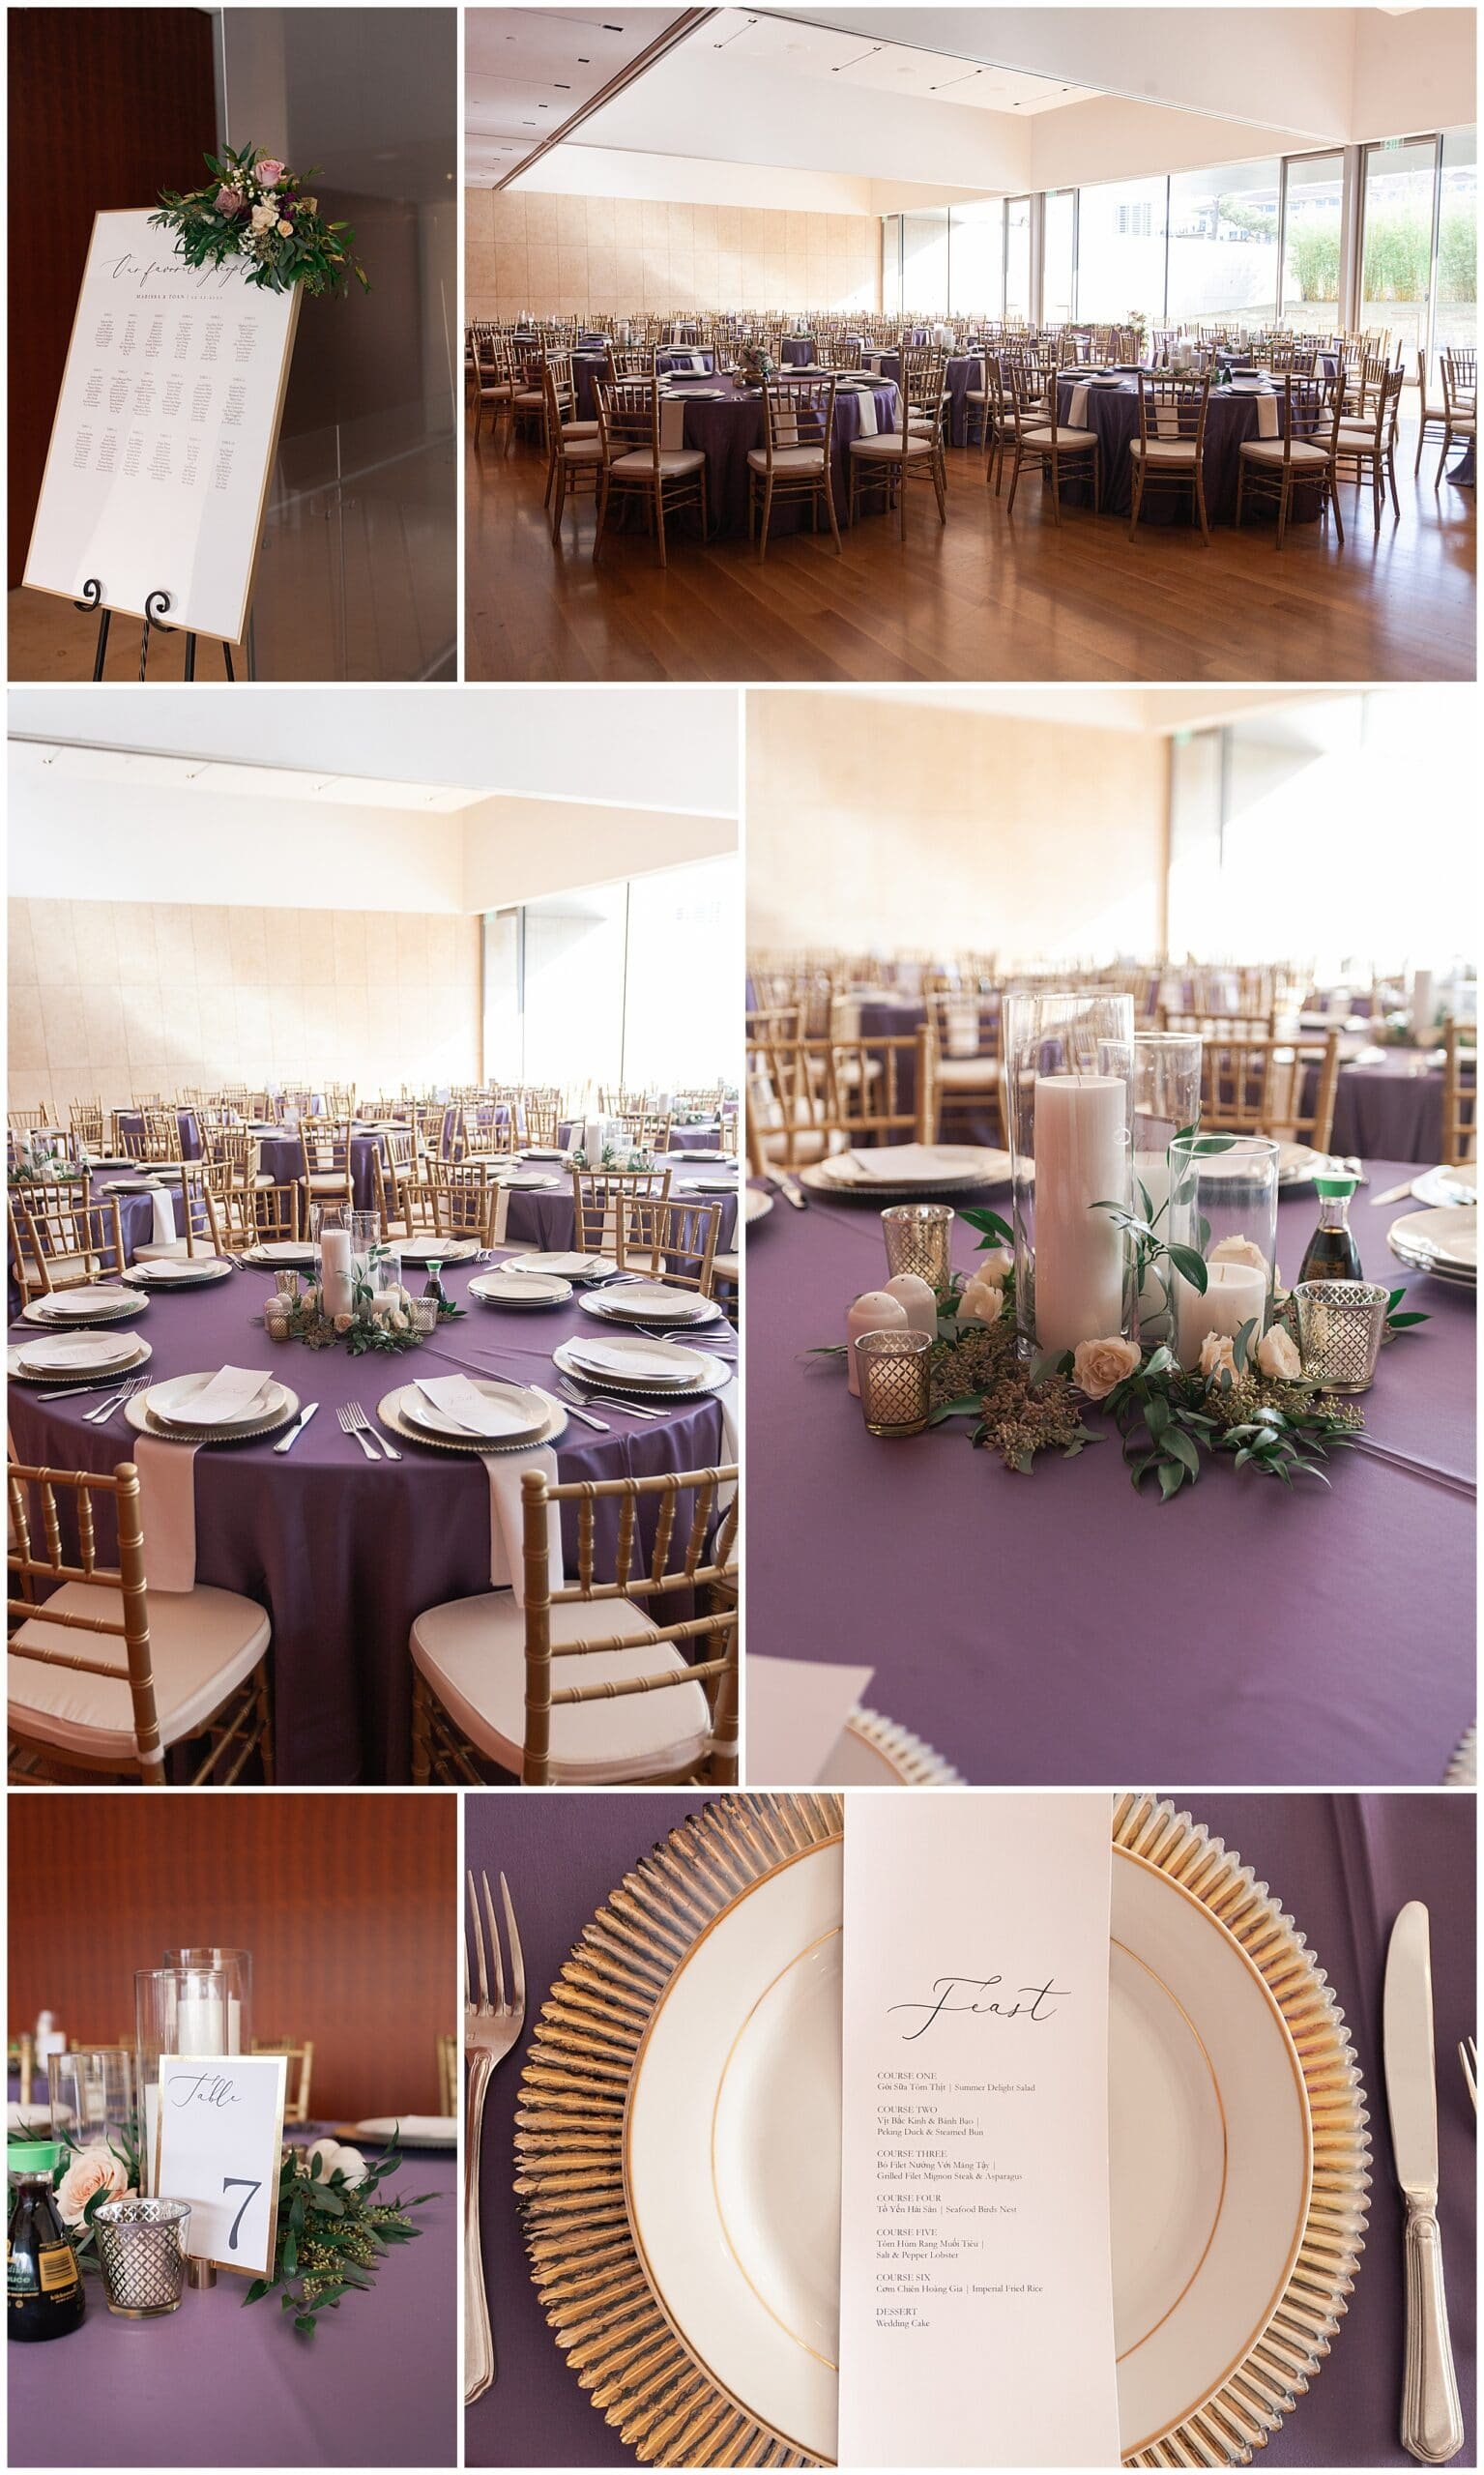 wedding reception table centers at the Asia Society in Houston TX by Swish and Click Photography